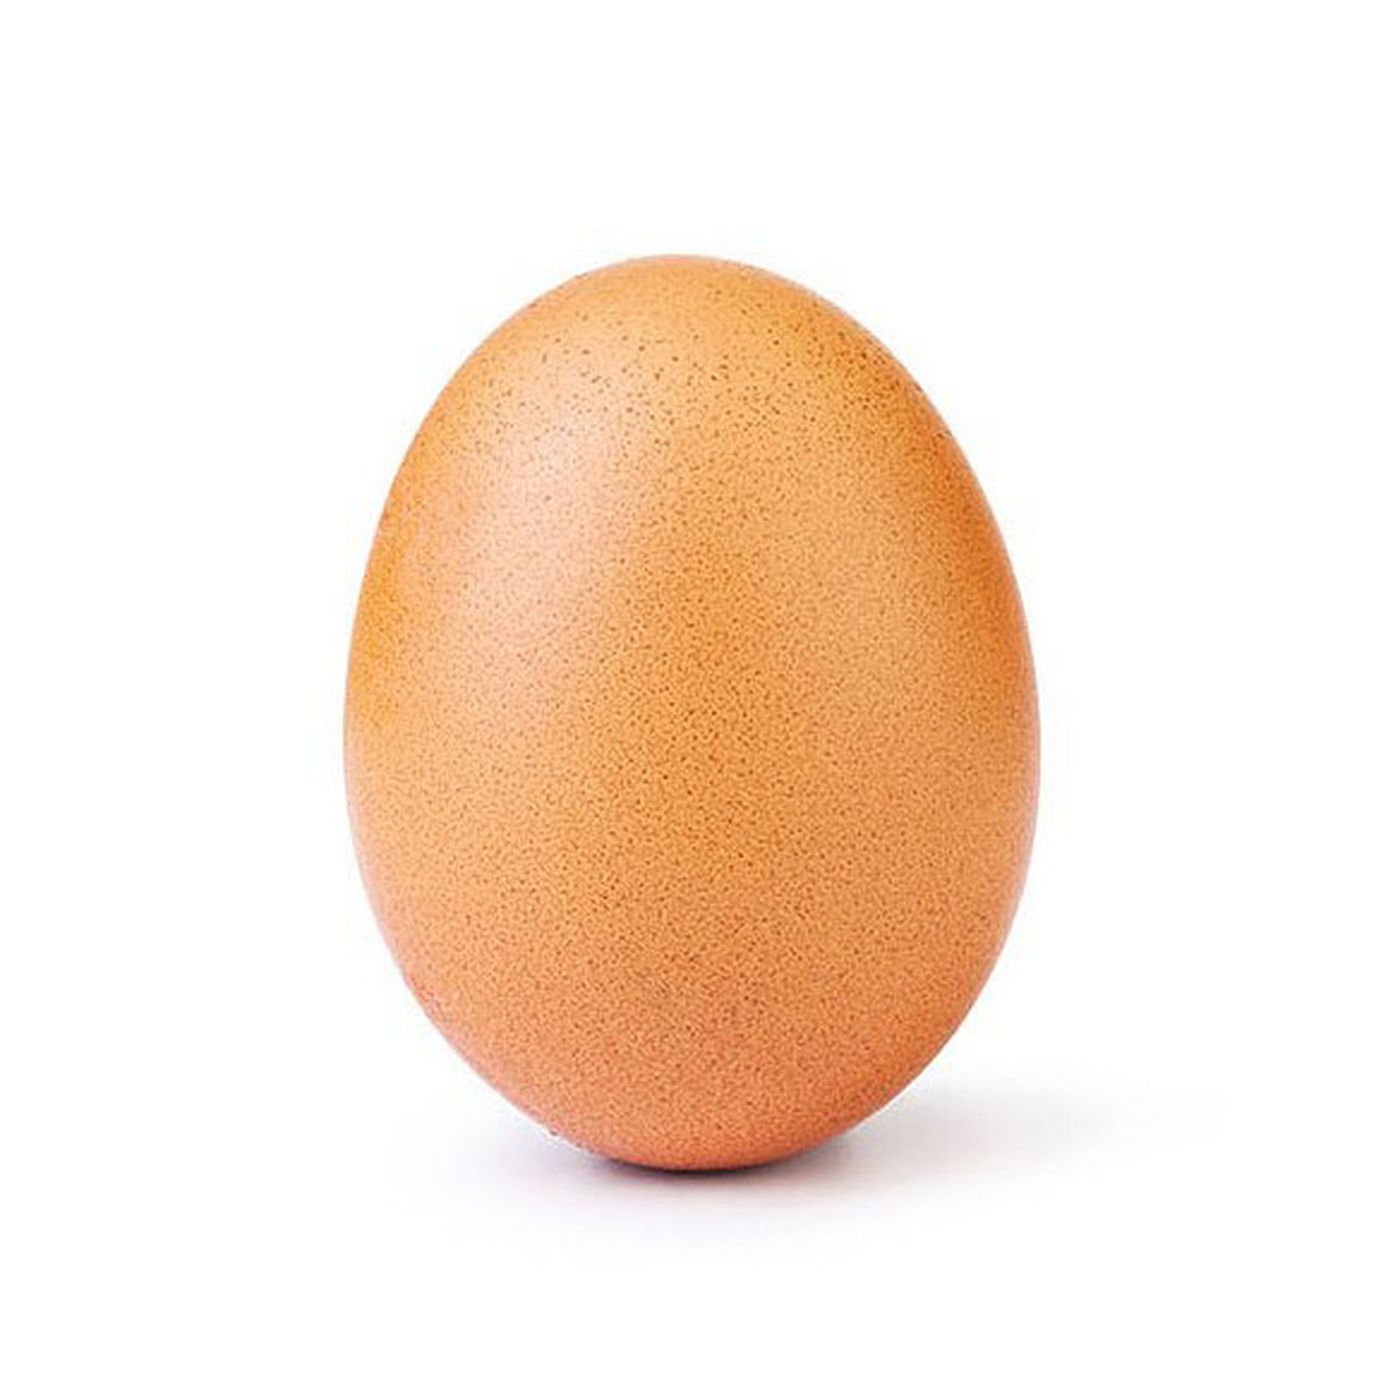 A picture of an egg broke the World Record for most Instagram likes (Photo courtesy of The Verge).